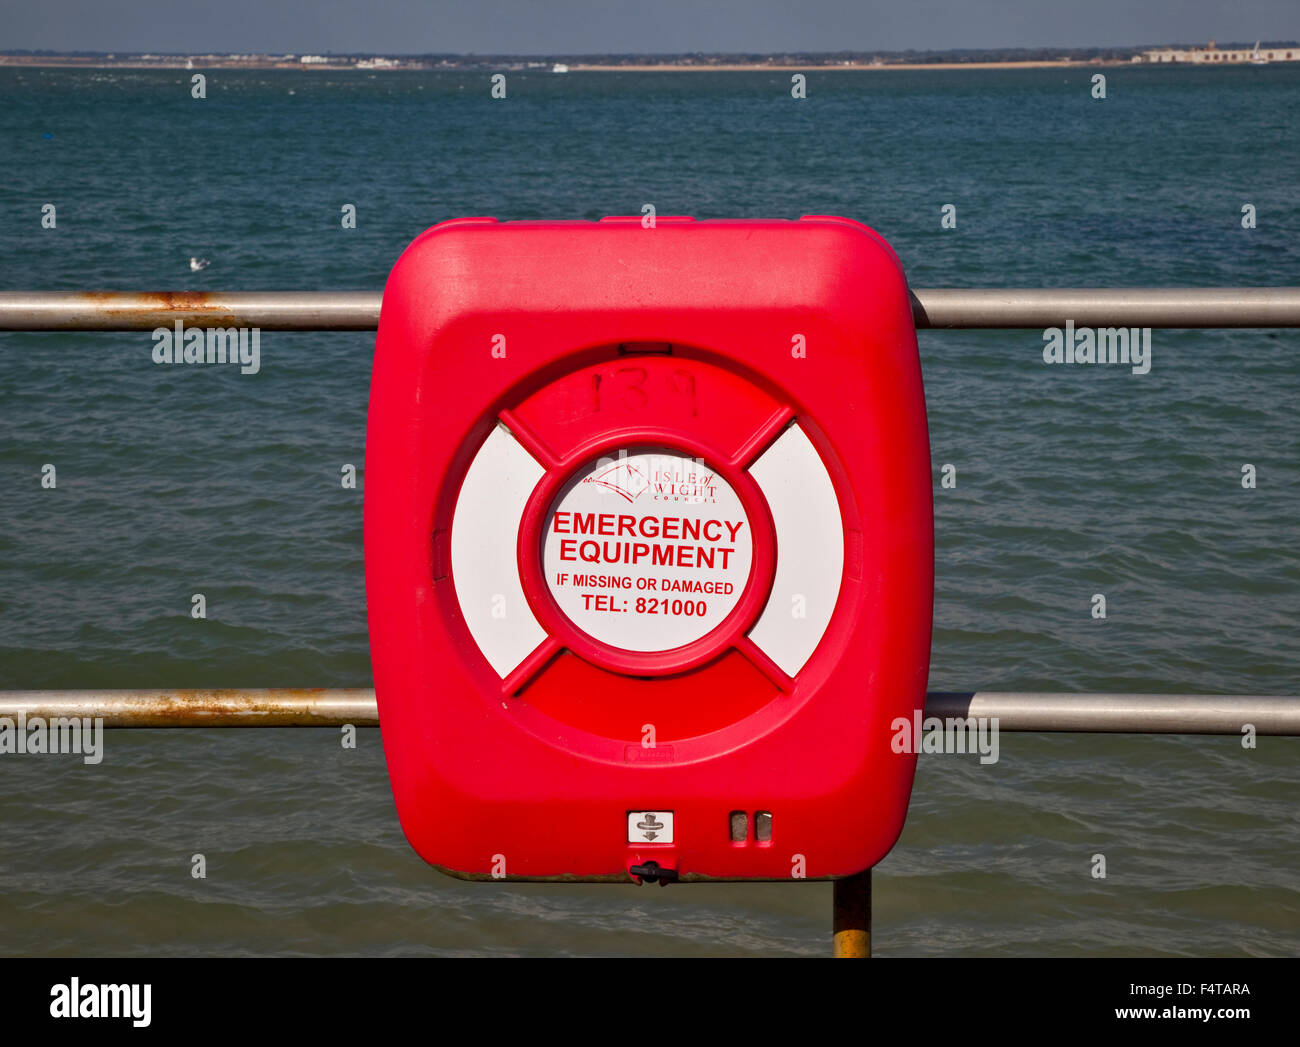 Lifebelt at Colwell Bay, Isle of Wight, Hampshire, England - Stock Image